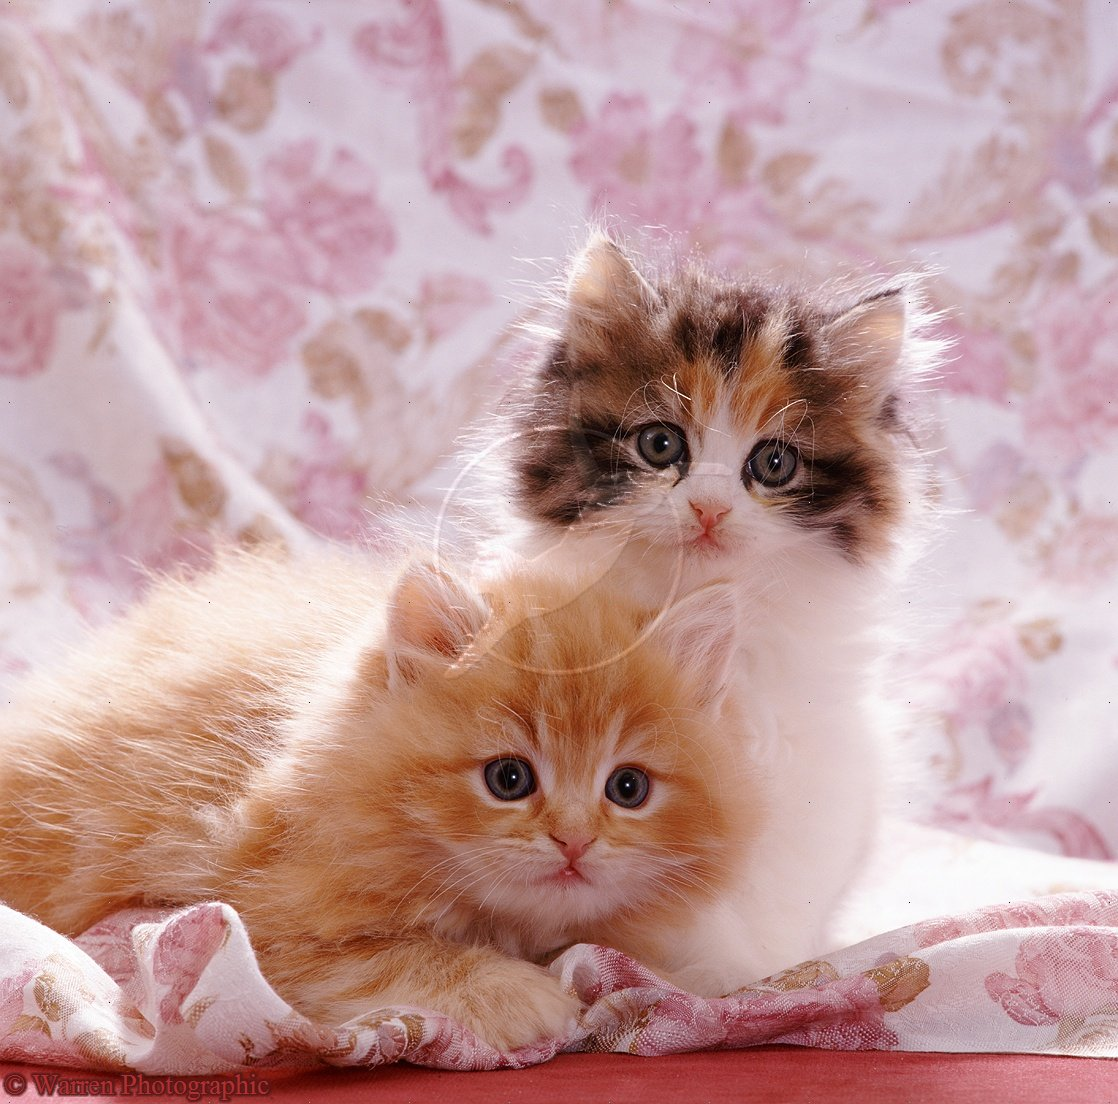 Cute Dog And Cat Wallpaper Cute Cats Photos Kittens 22556 Hd Wallpaper Backgrounds Download